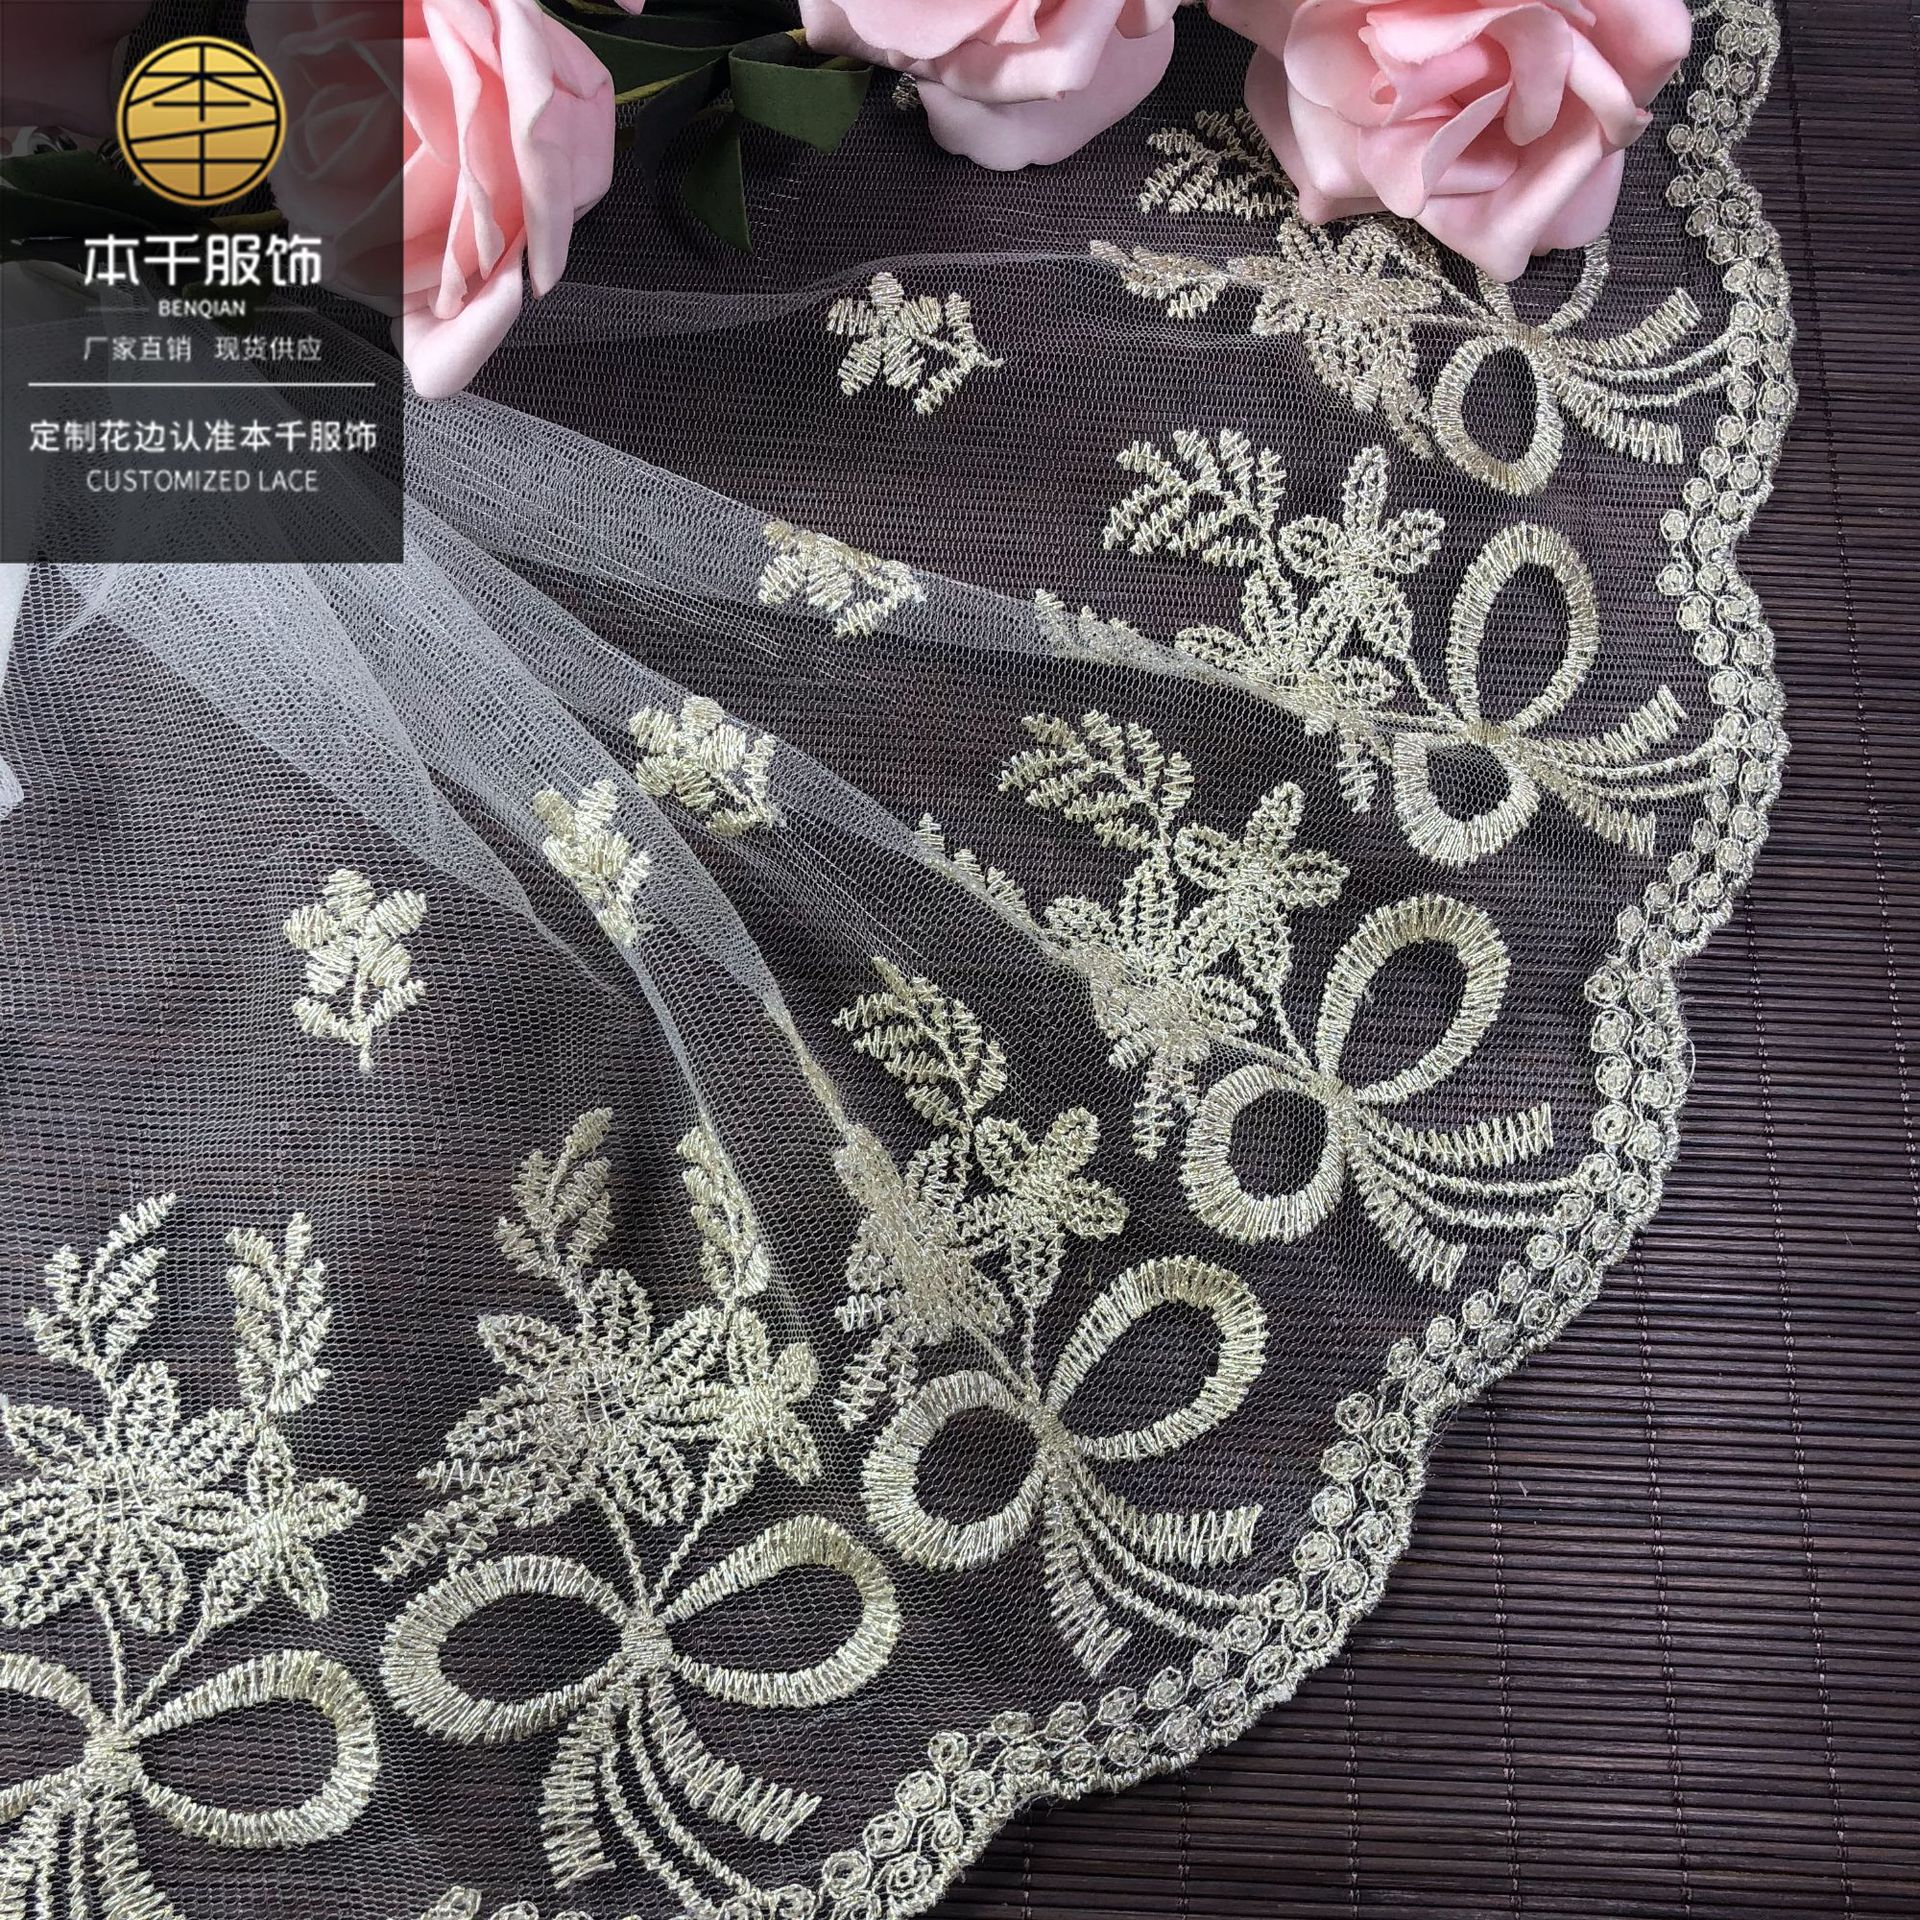 BENQIAN 25cm lace fabrics Lolita lace accessories wide skirt accessories